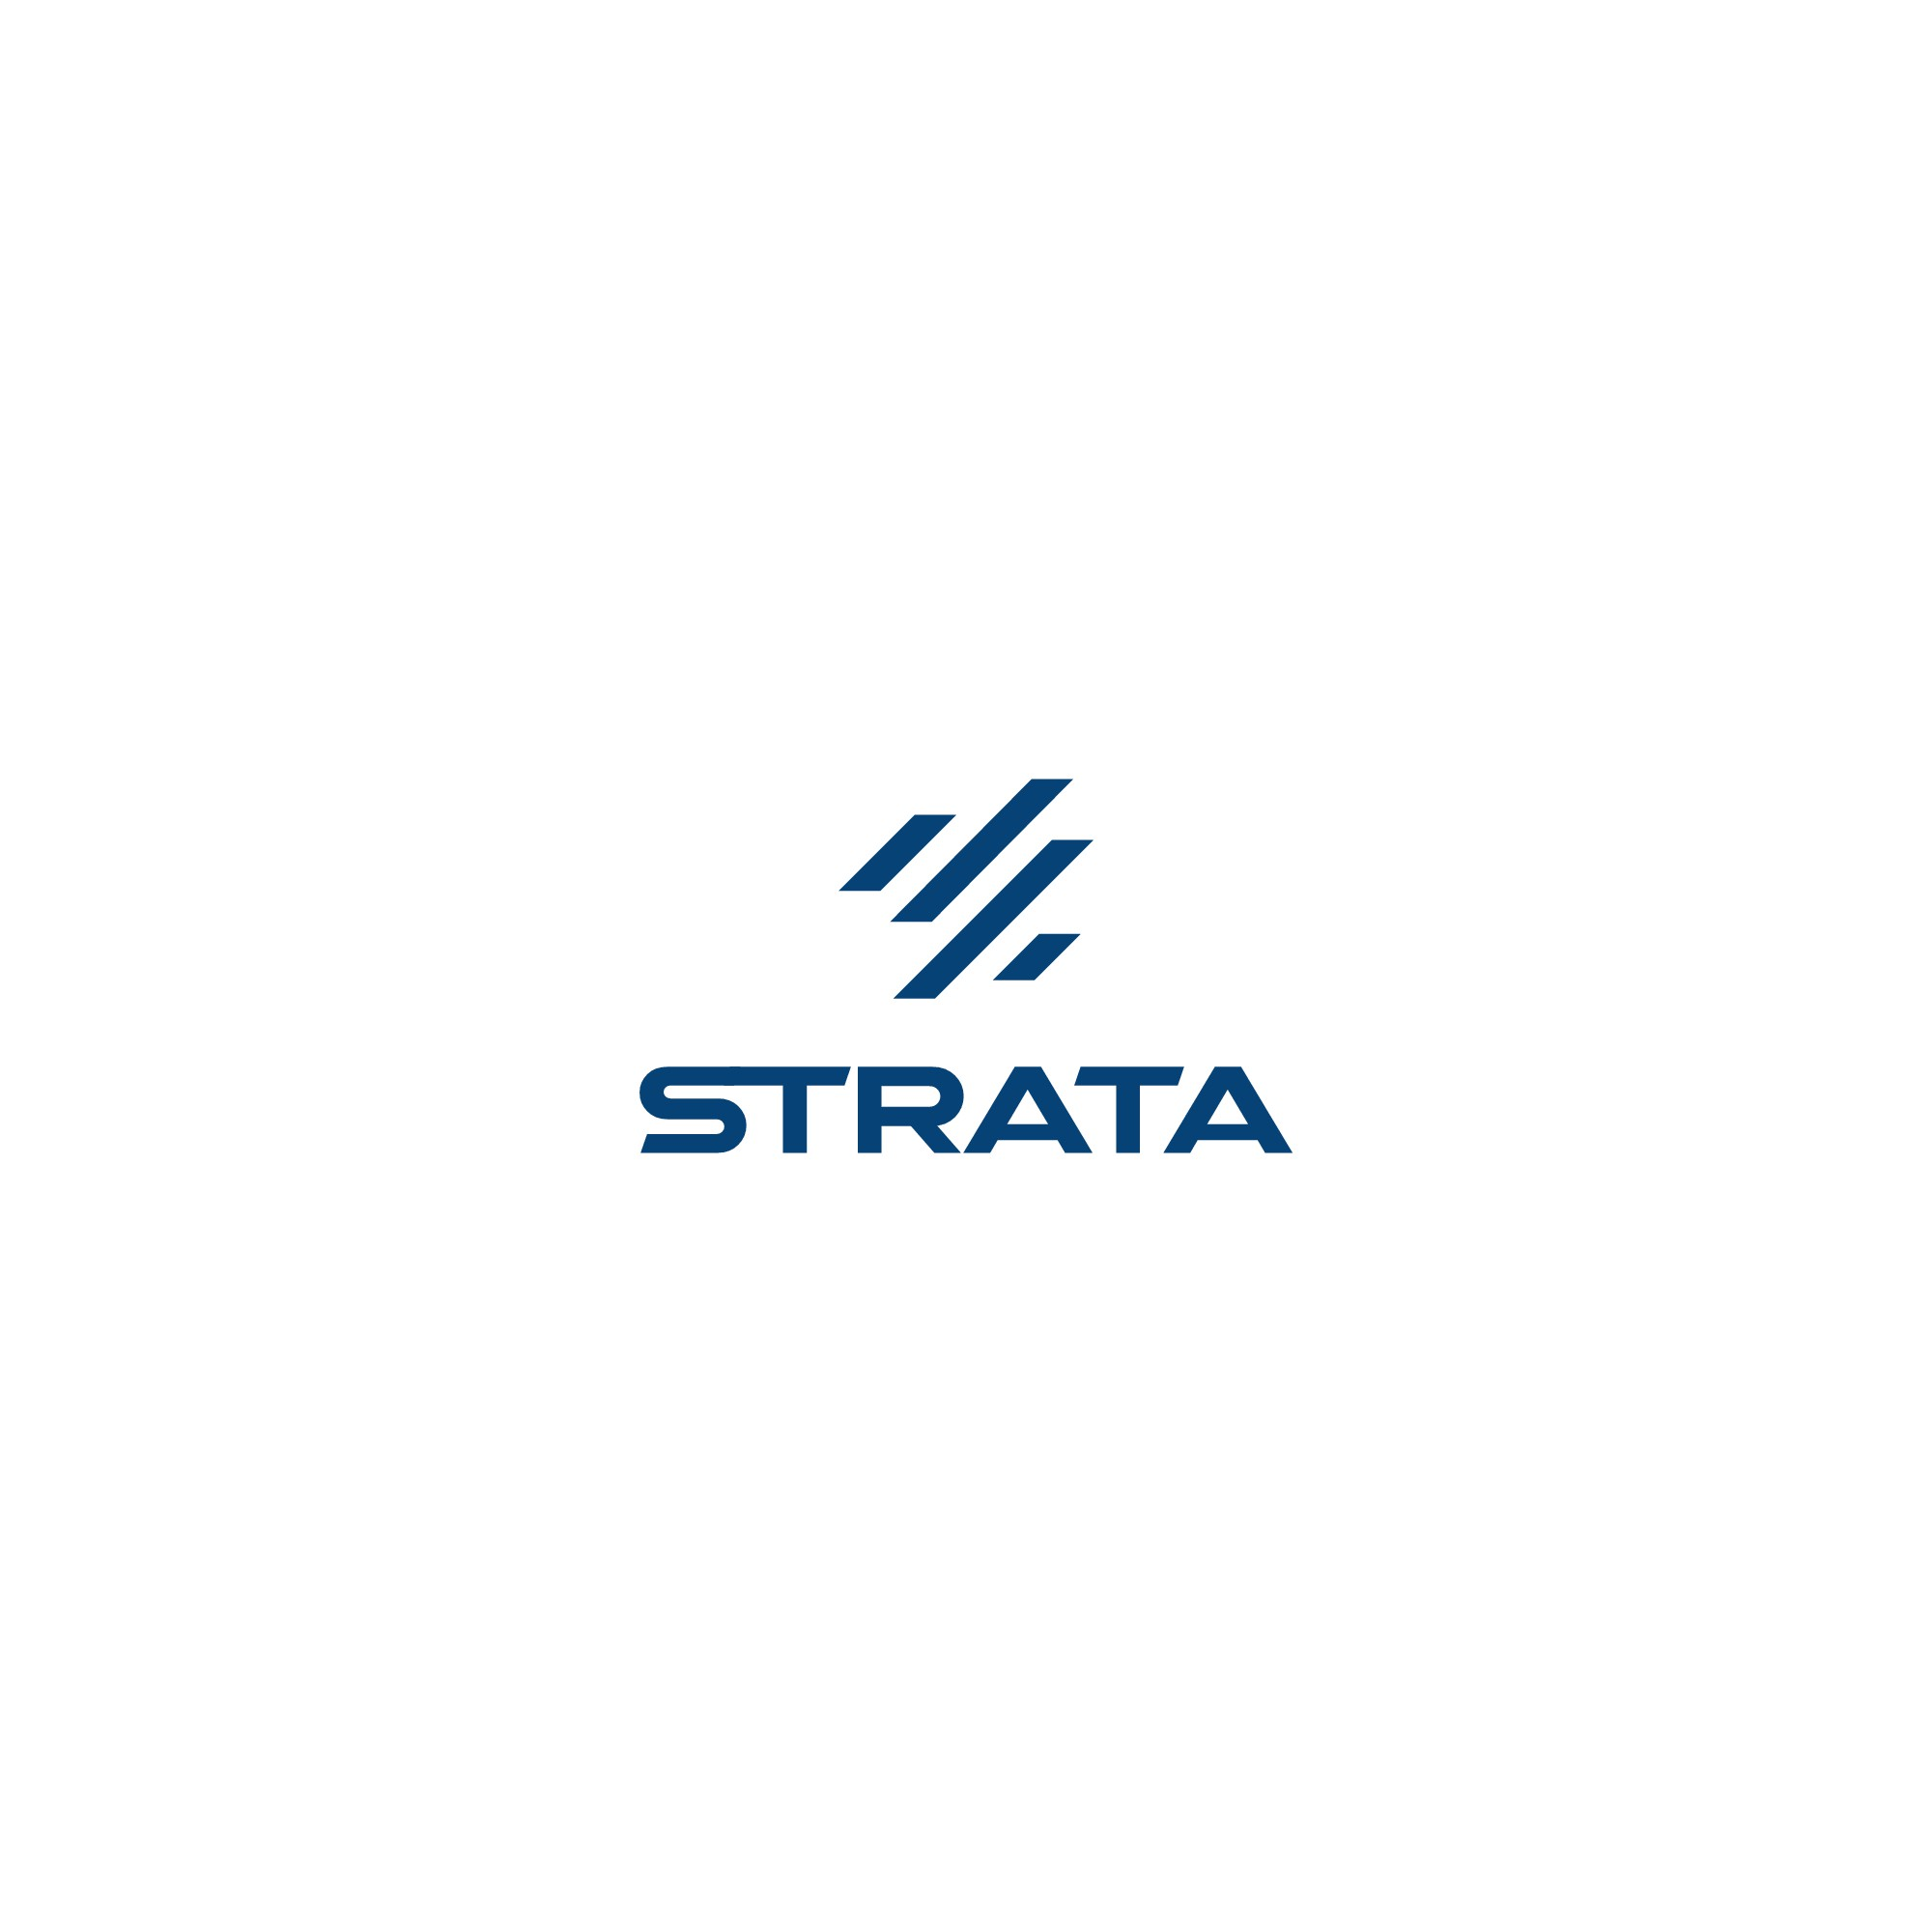 I need a logo for Strata, a premium trading card game accessory company